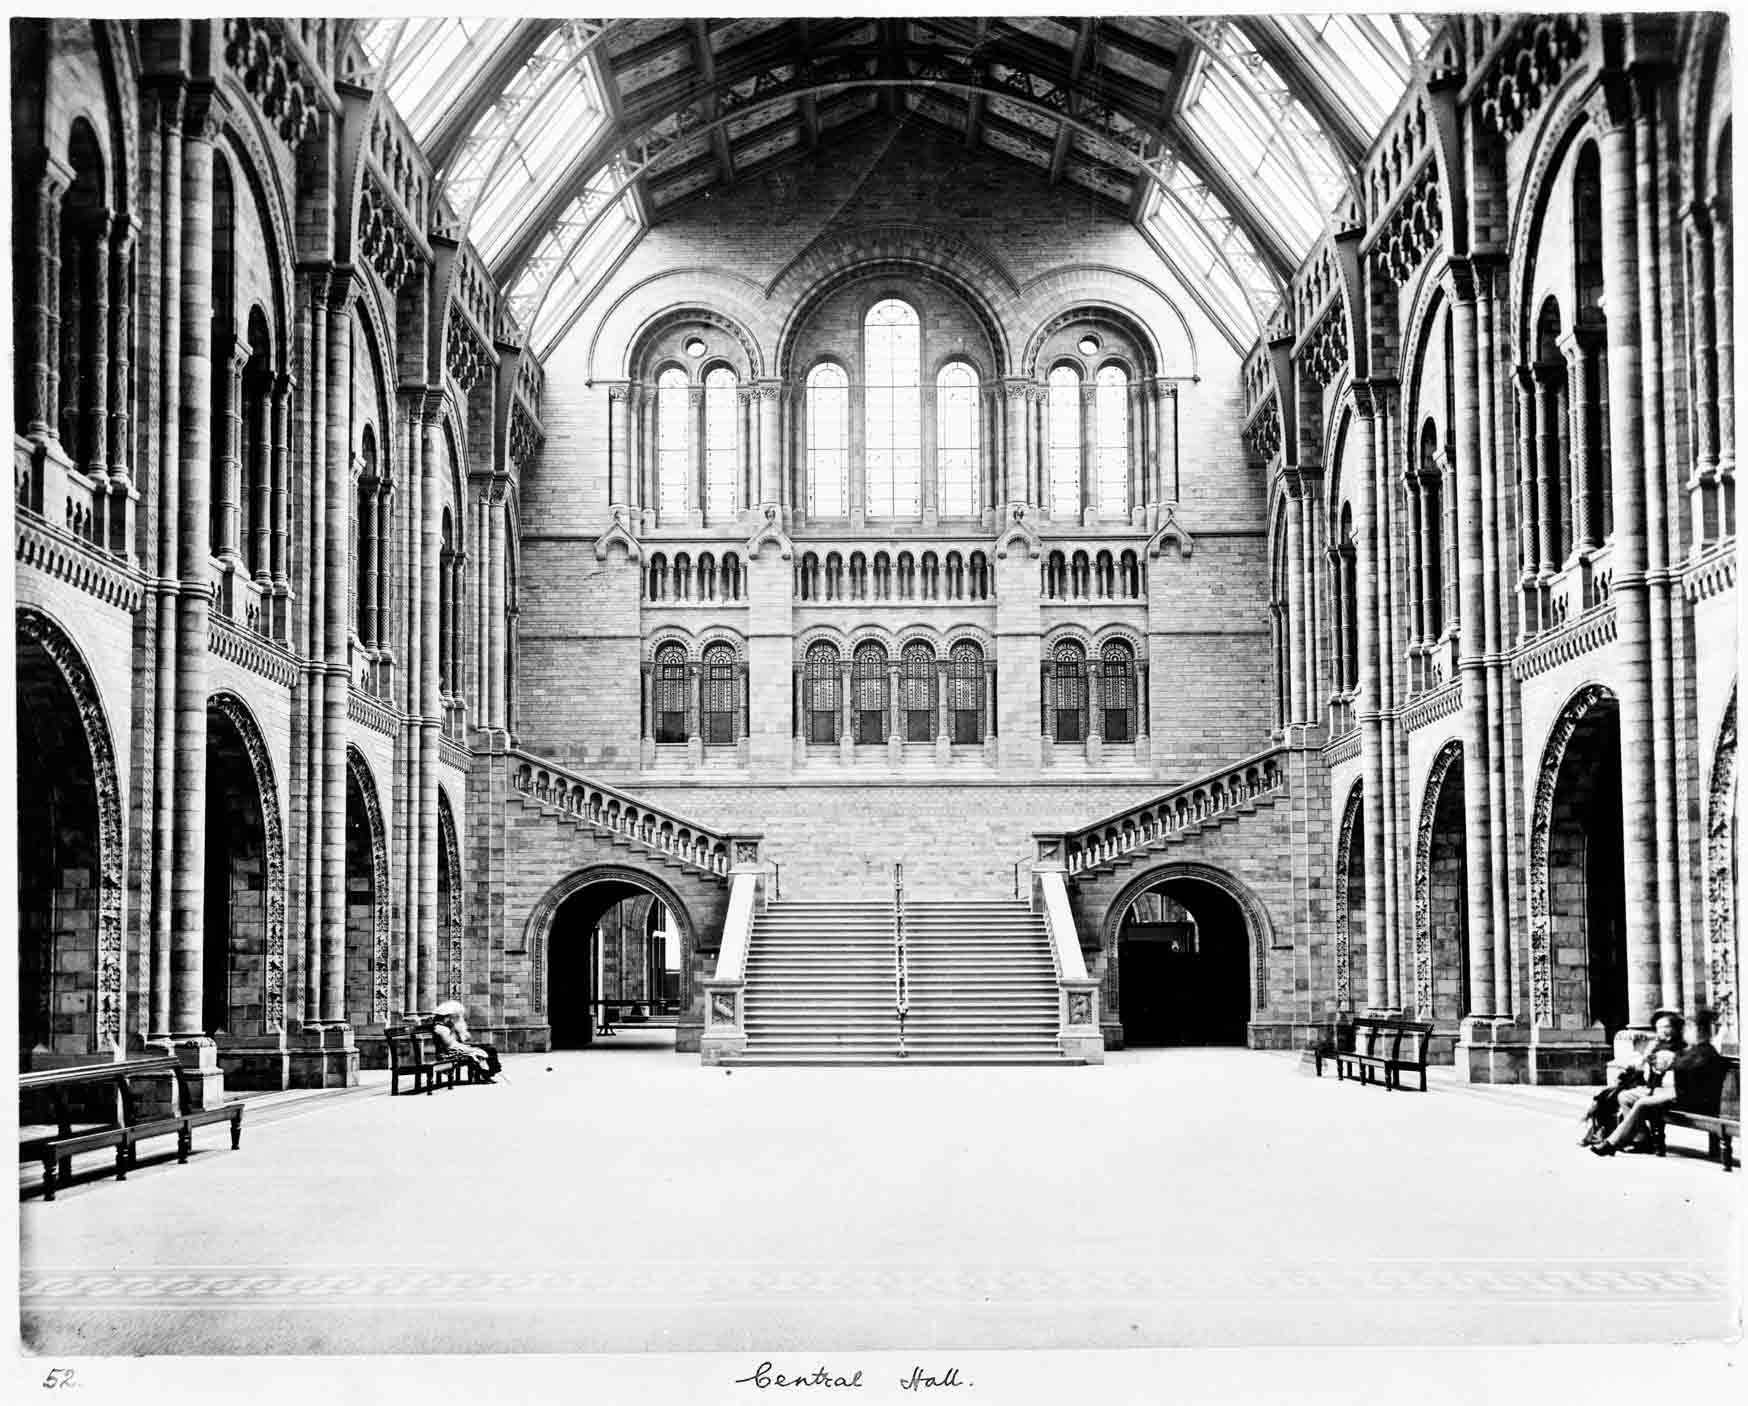 The splendid cathedral-like Central Hall of Natural History Museum as seen in 1882. © The Trustees of the Natural History Museum, London